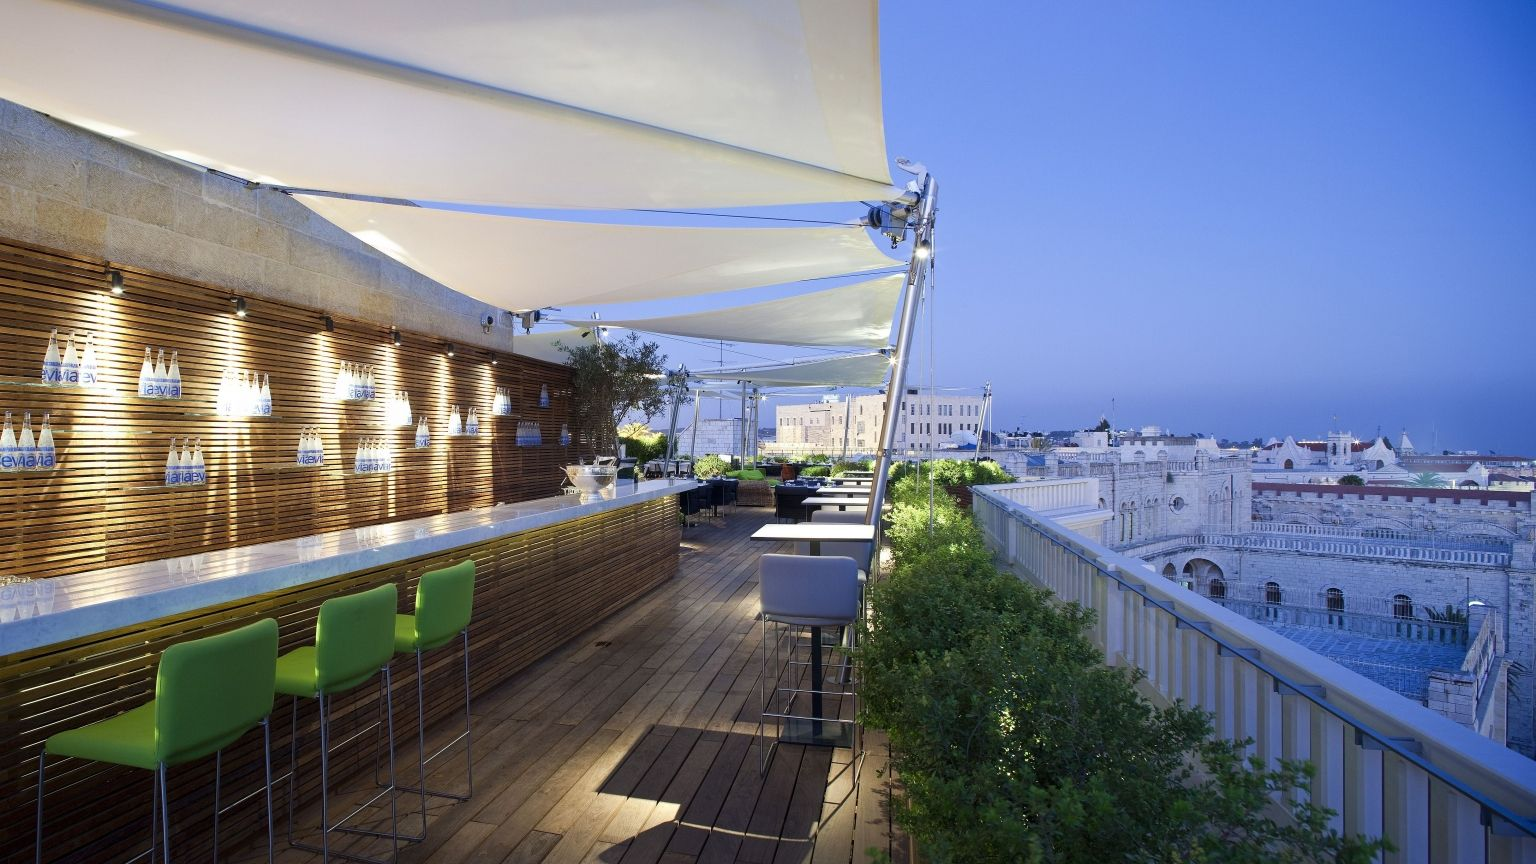 Mamilla Hotel's rooftop restaurant deck and city view at night